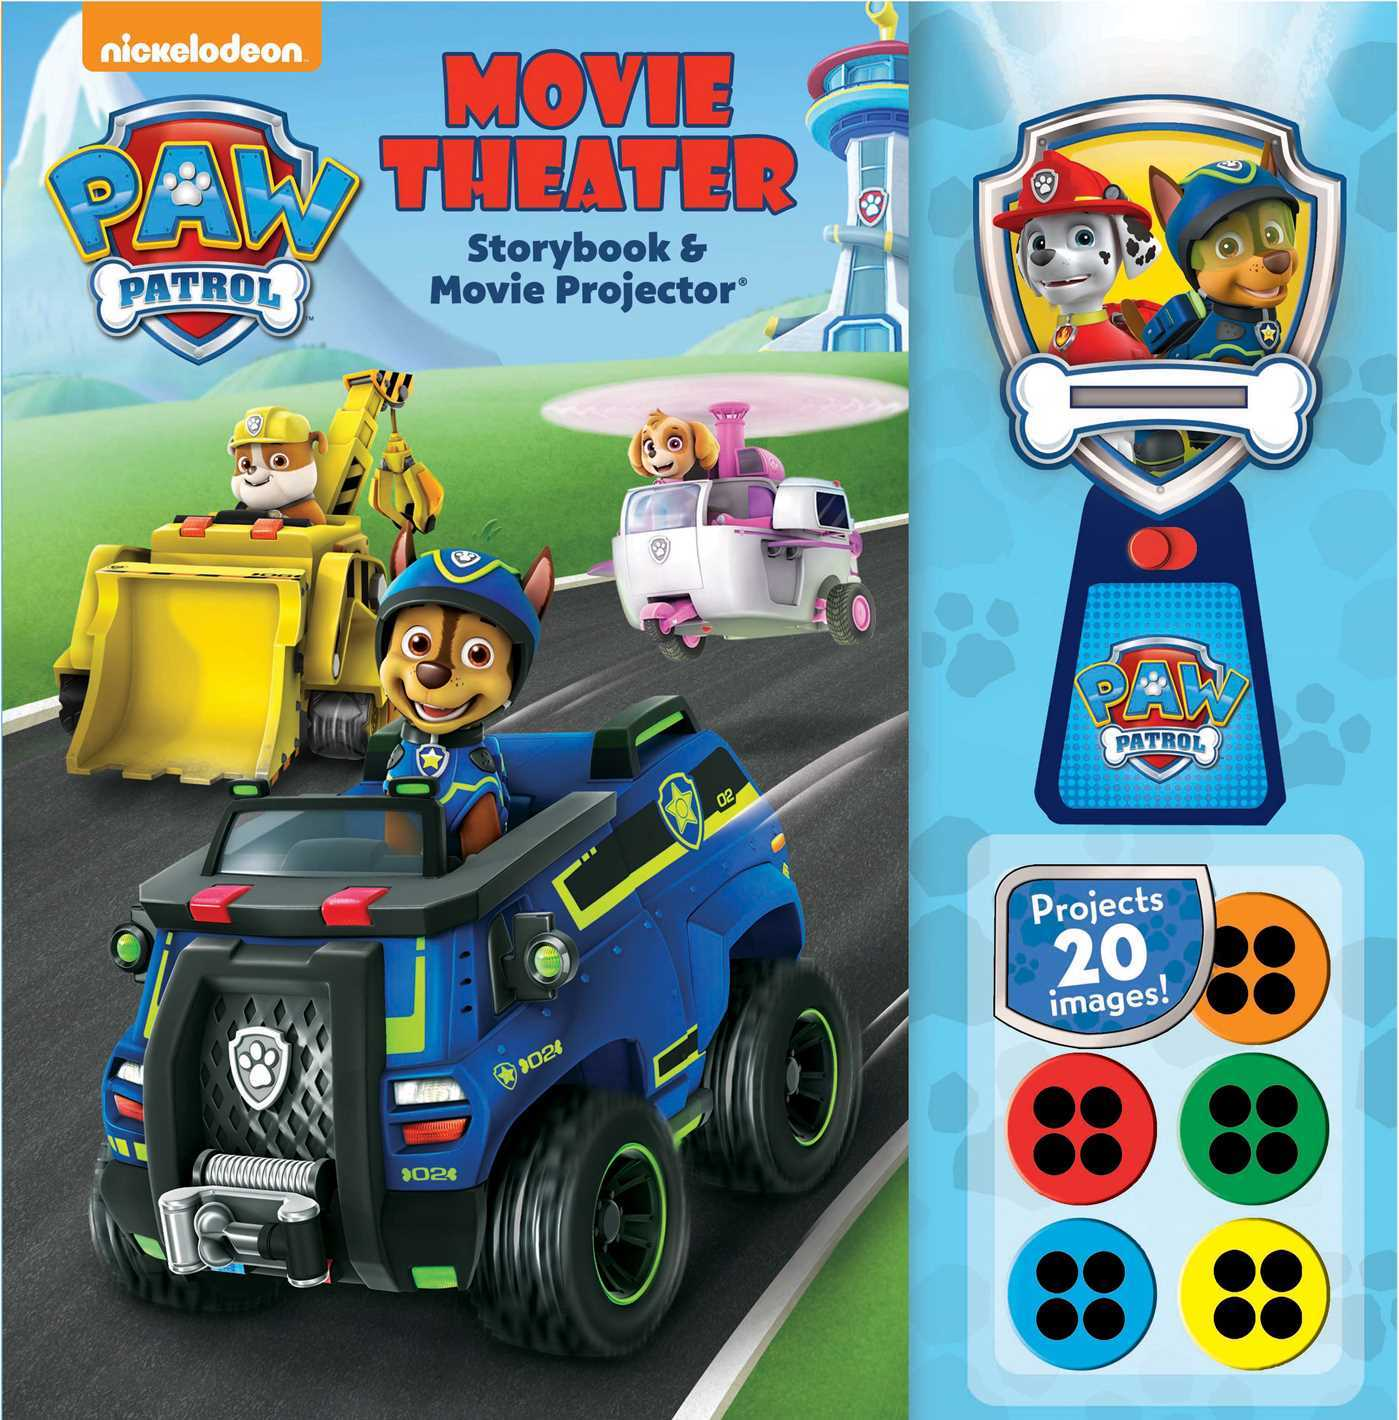 PAW Patrol: Movie Theater Storybook  Movie Projector